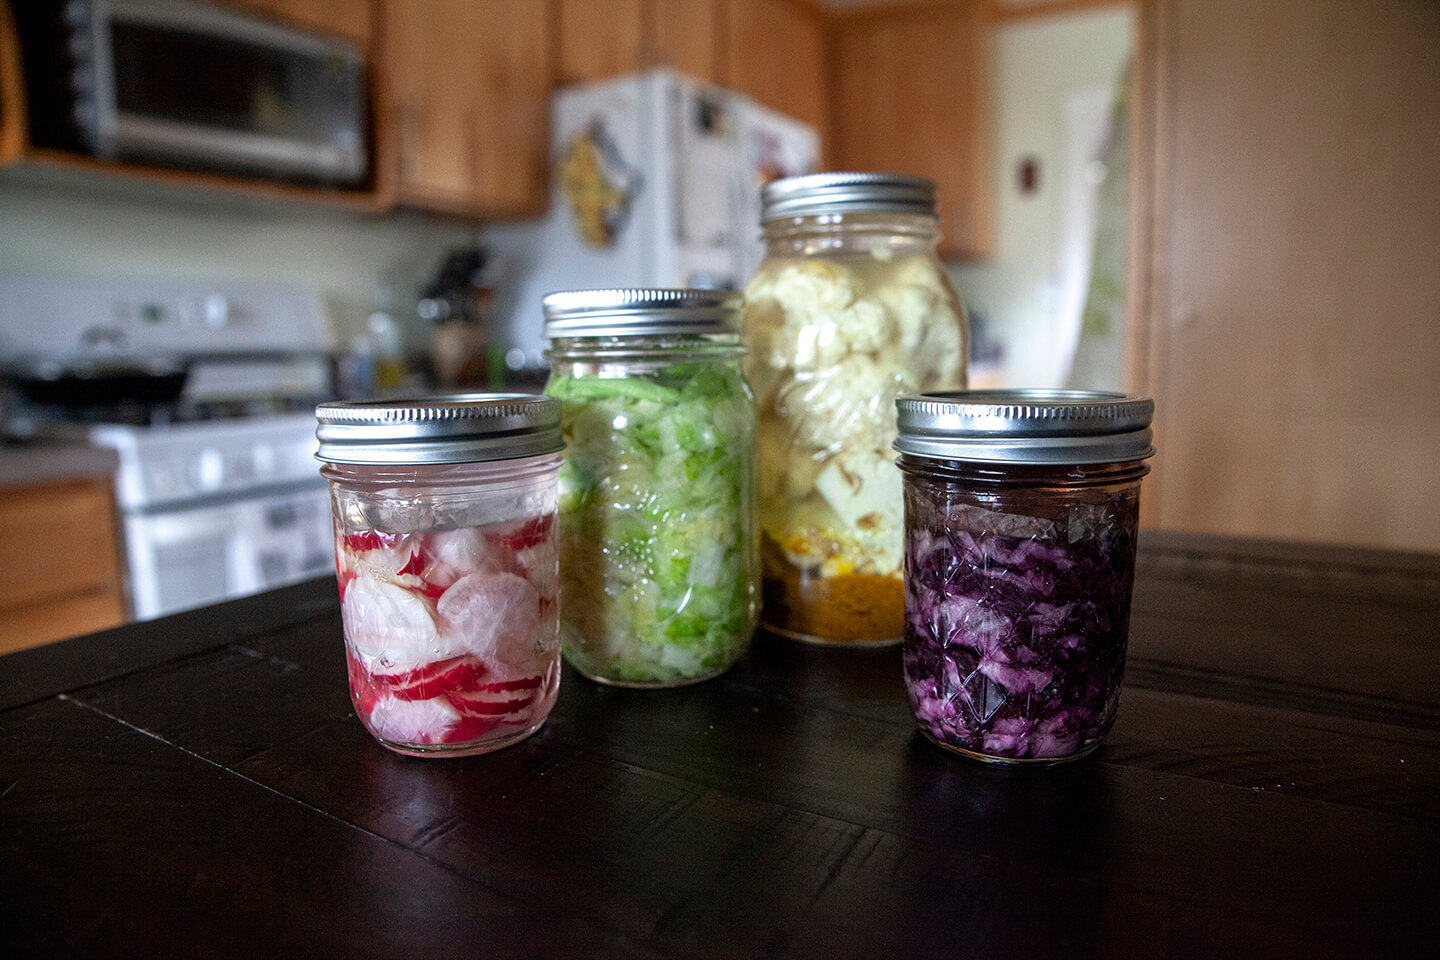 Four sealed, glass jars holding a variety of fermented vegetables.